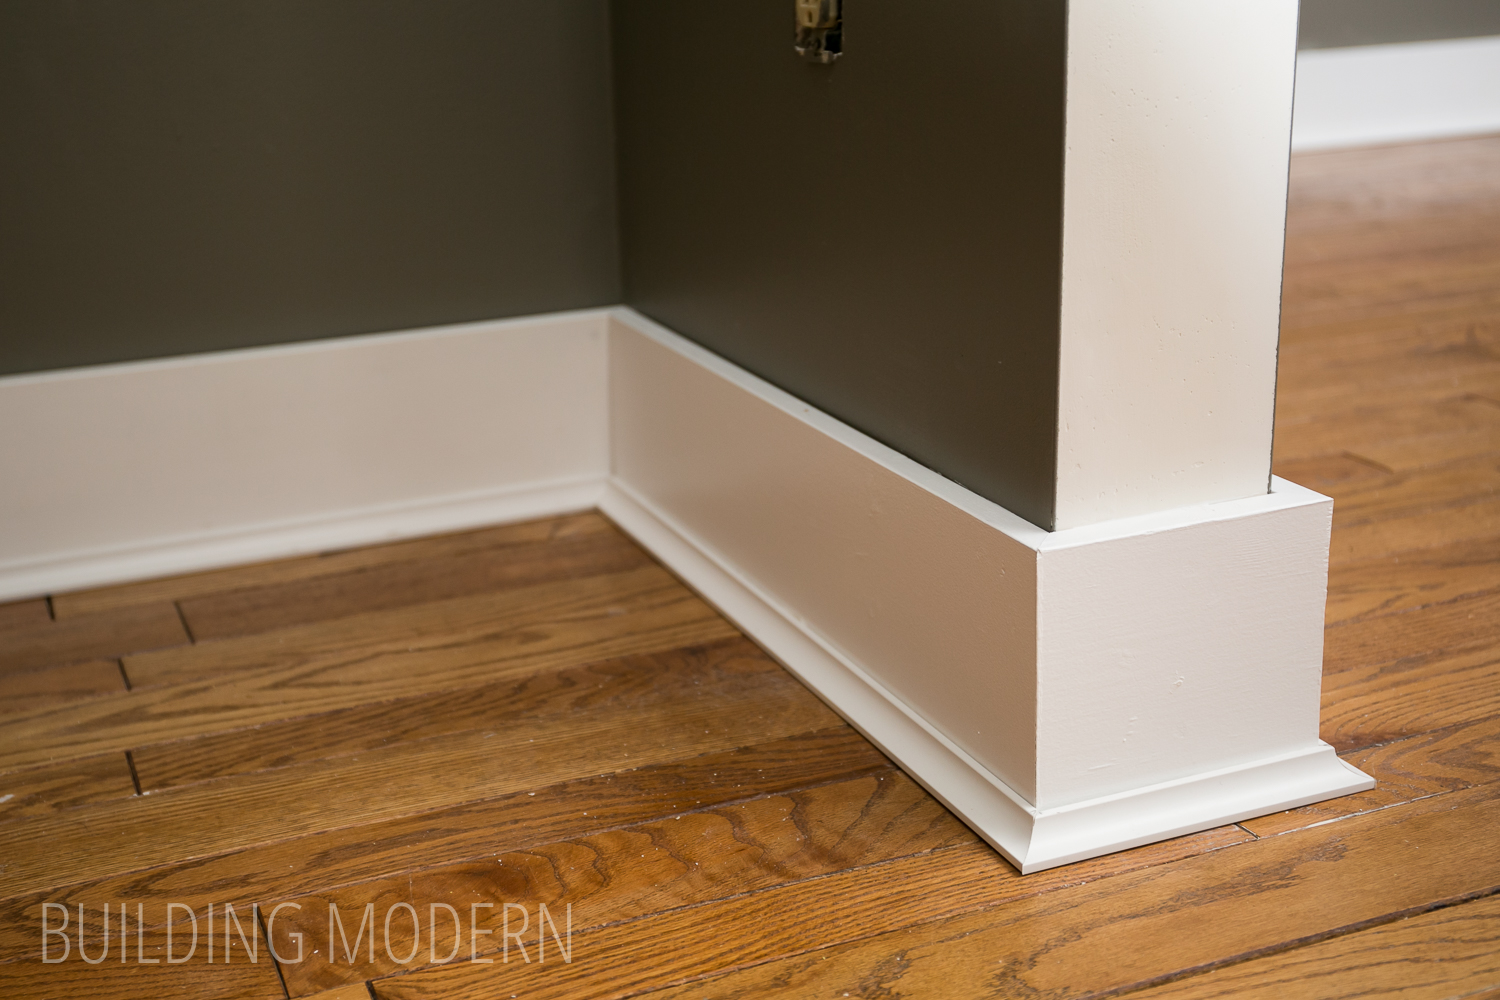 Modern Baseboard Images Galleries